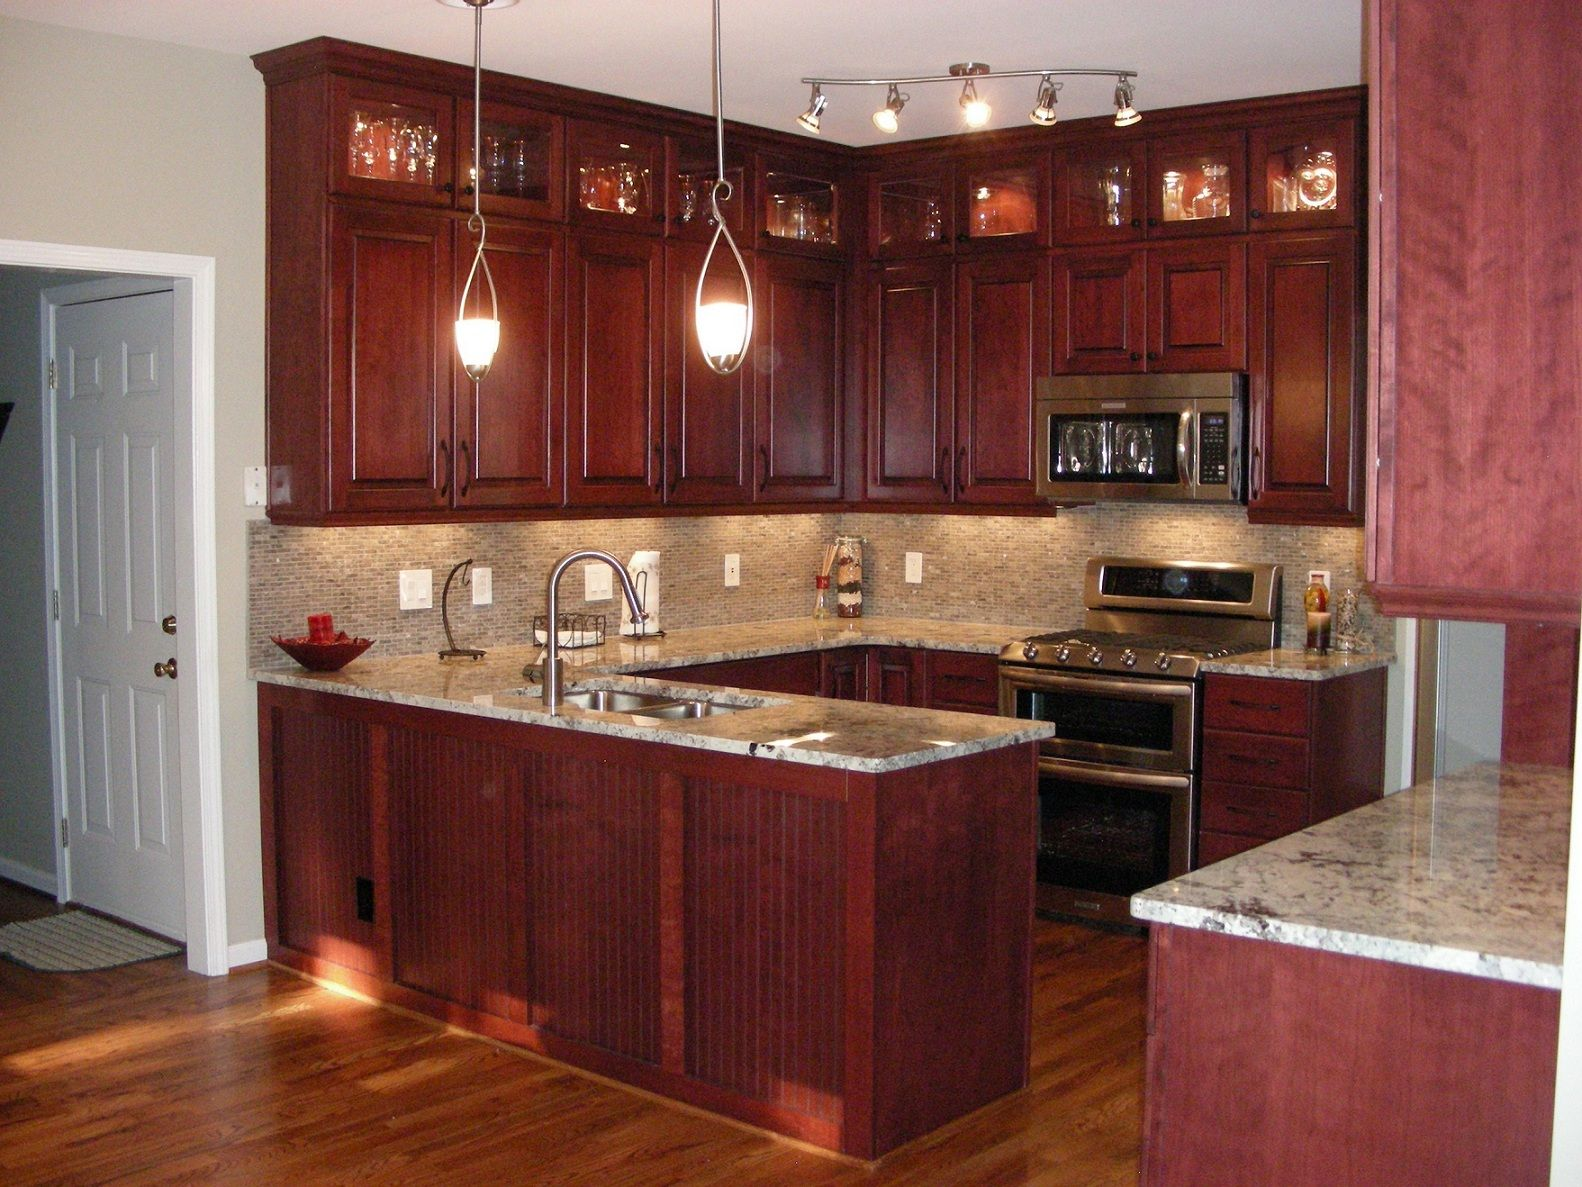 cherry kitchen cabinets in a thoughtful design work hard to make this house a home - Cherry Wood Kitchen Cabinet